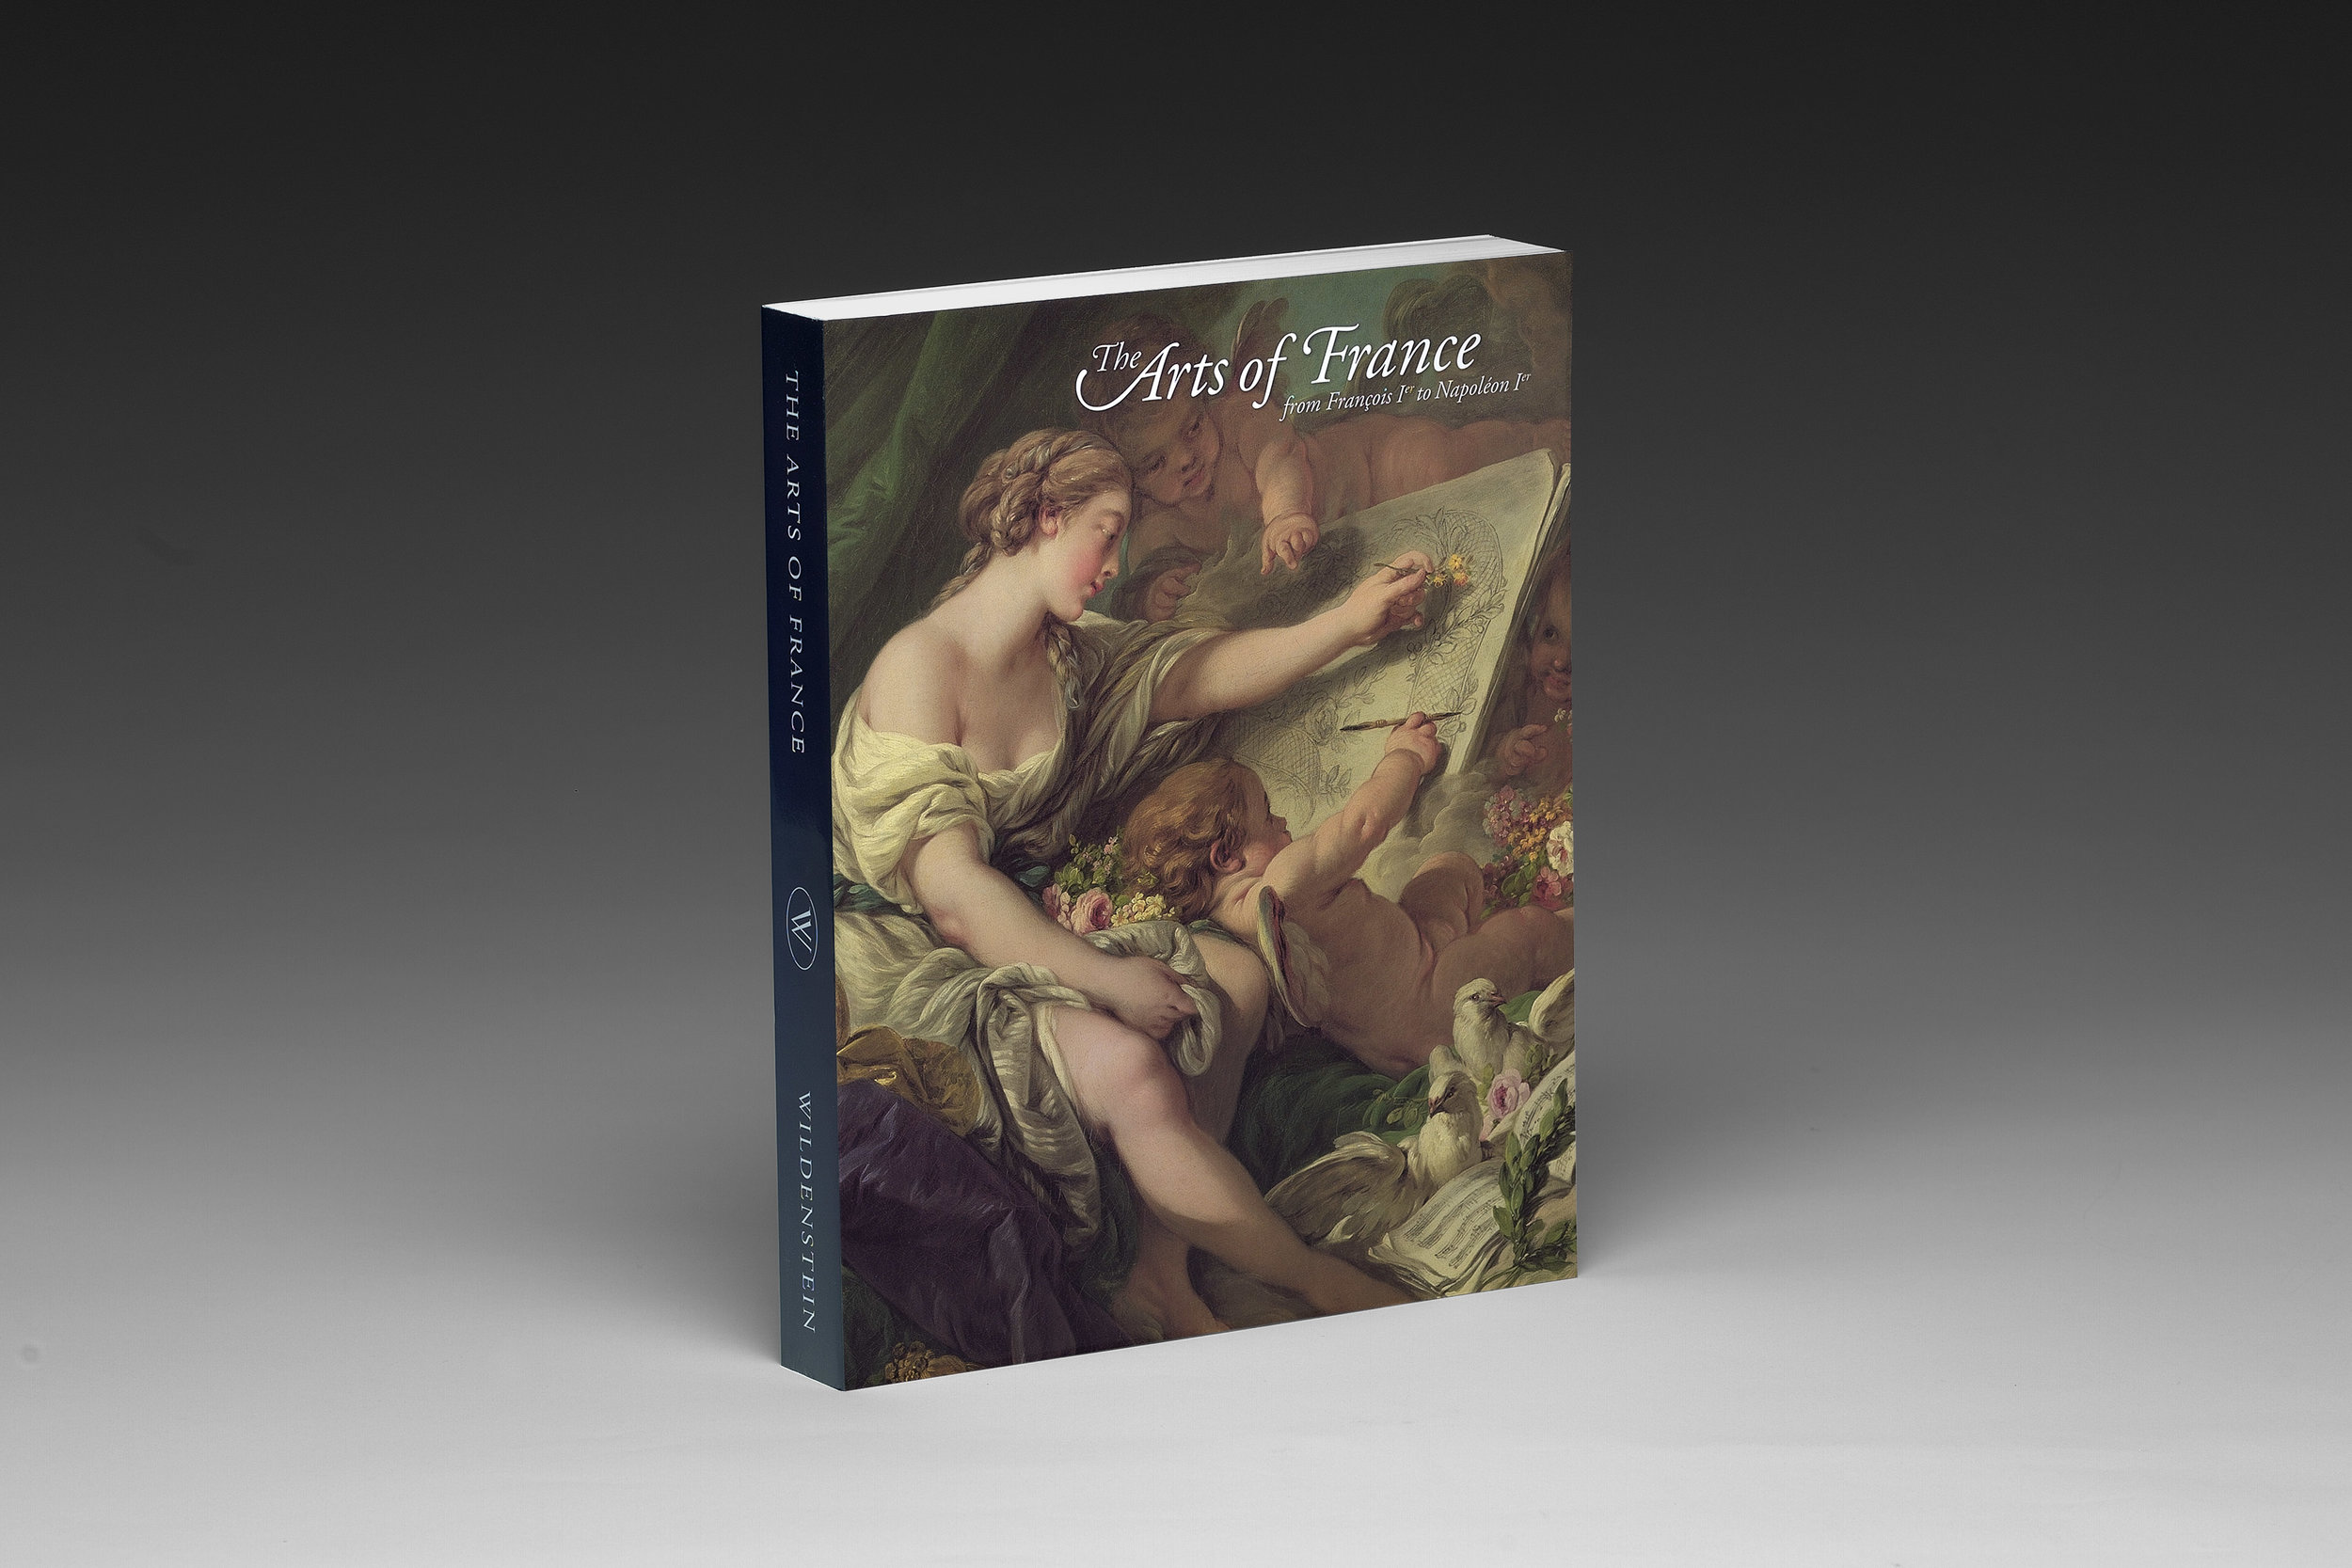 The Arts of France exhibition catalogue